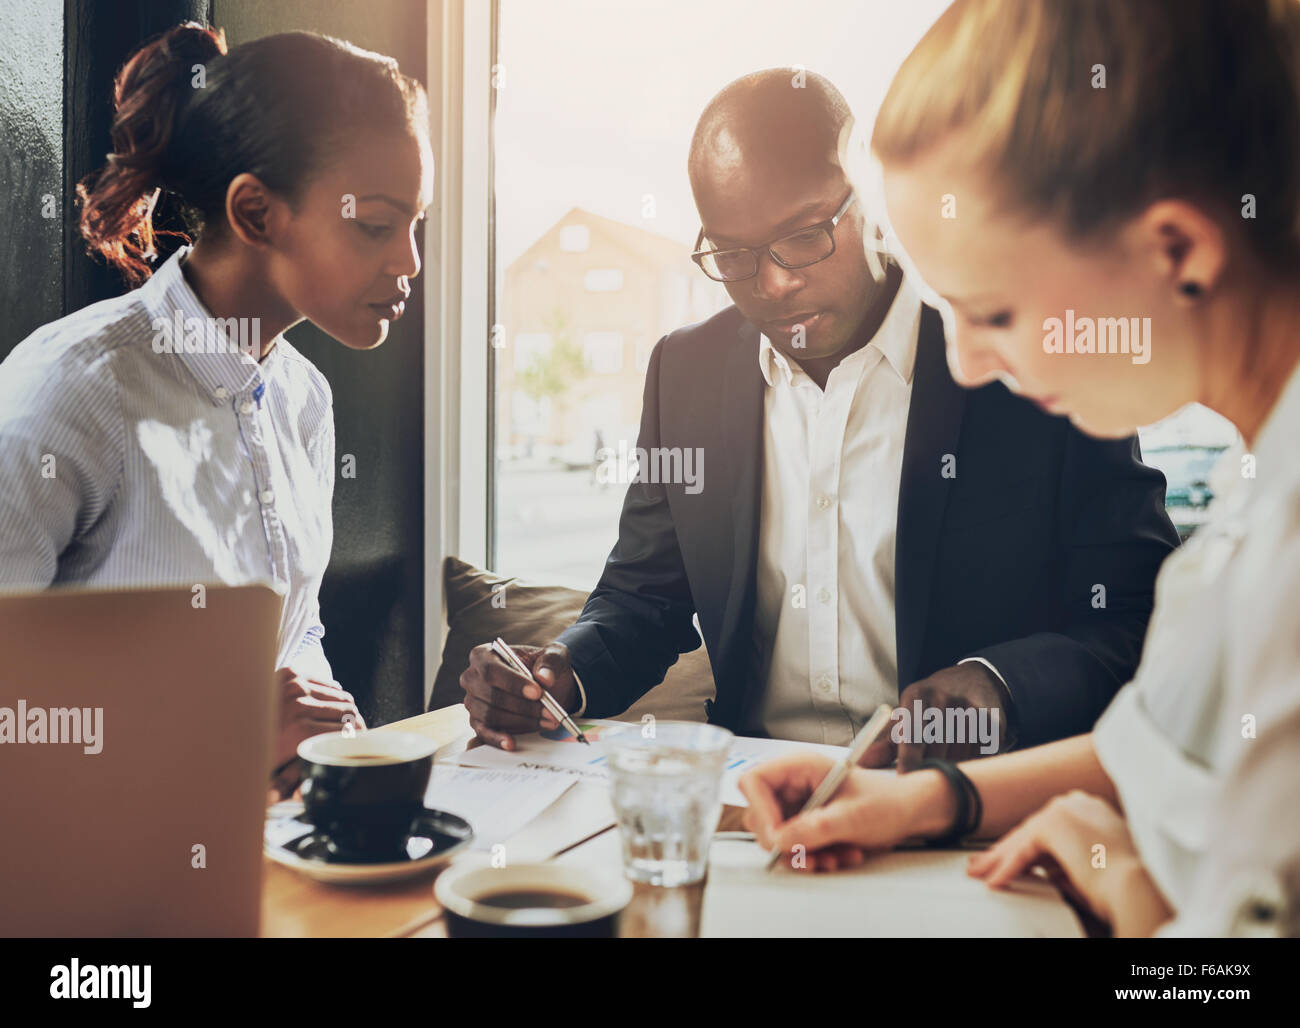 Serious group of business people working, multi ethnic group, business, entrepreneur, start up concept Stock Photo